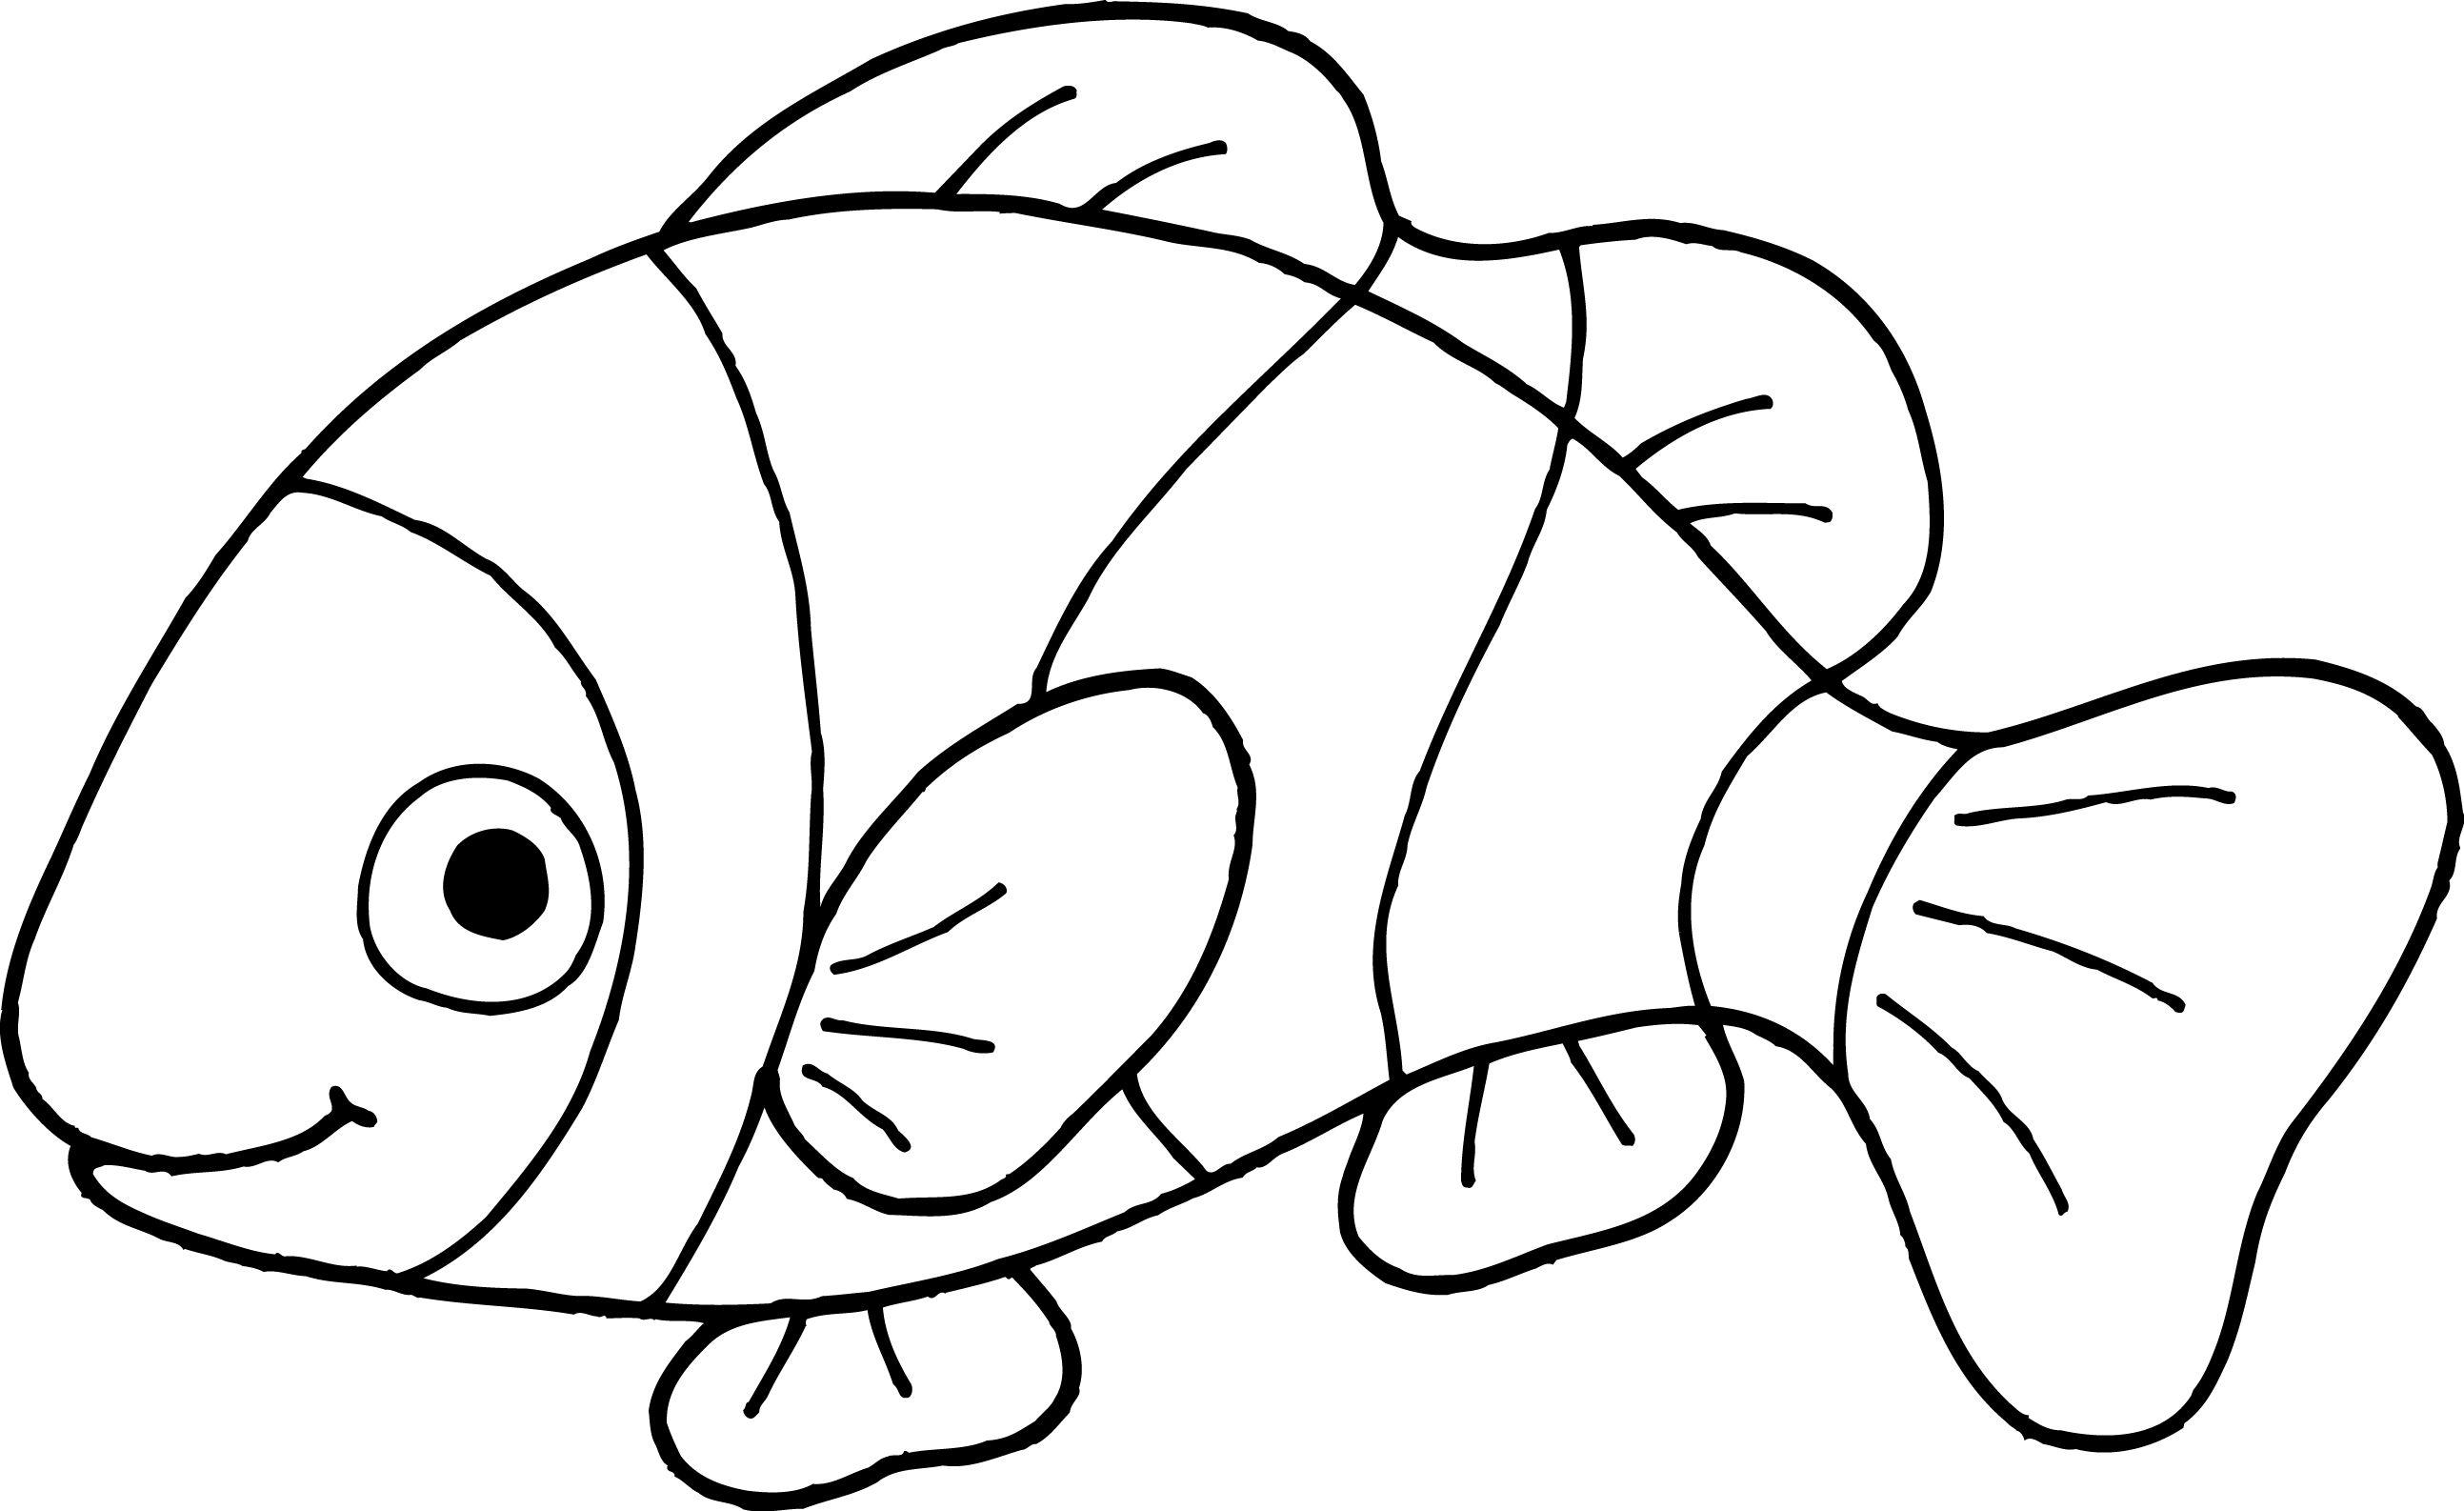 Look after fish clipart black and white clipart freeuse library Black And White Fish Drawing at PaintingValley.com   Explore ... clipart freeuse library